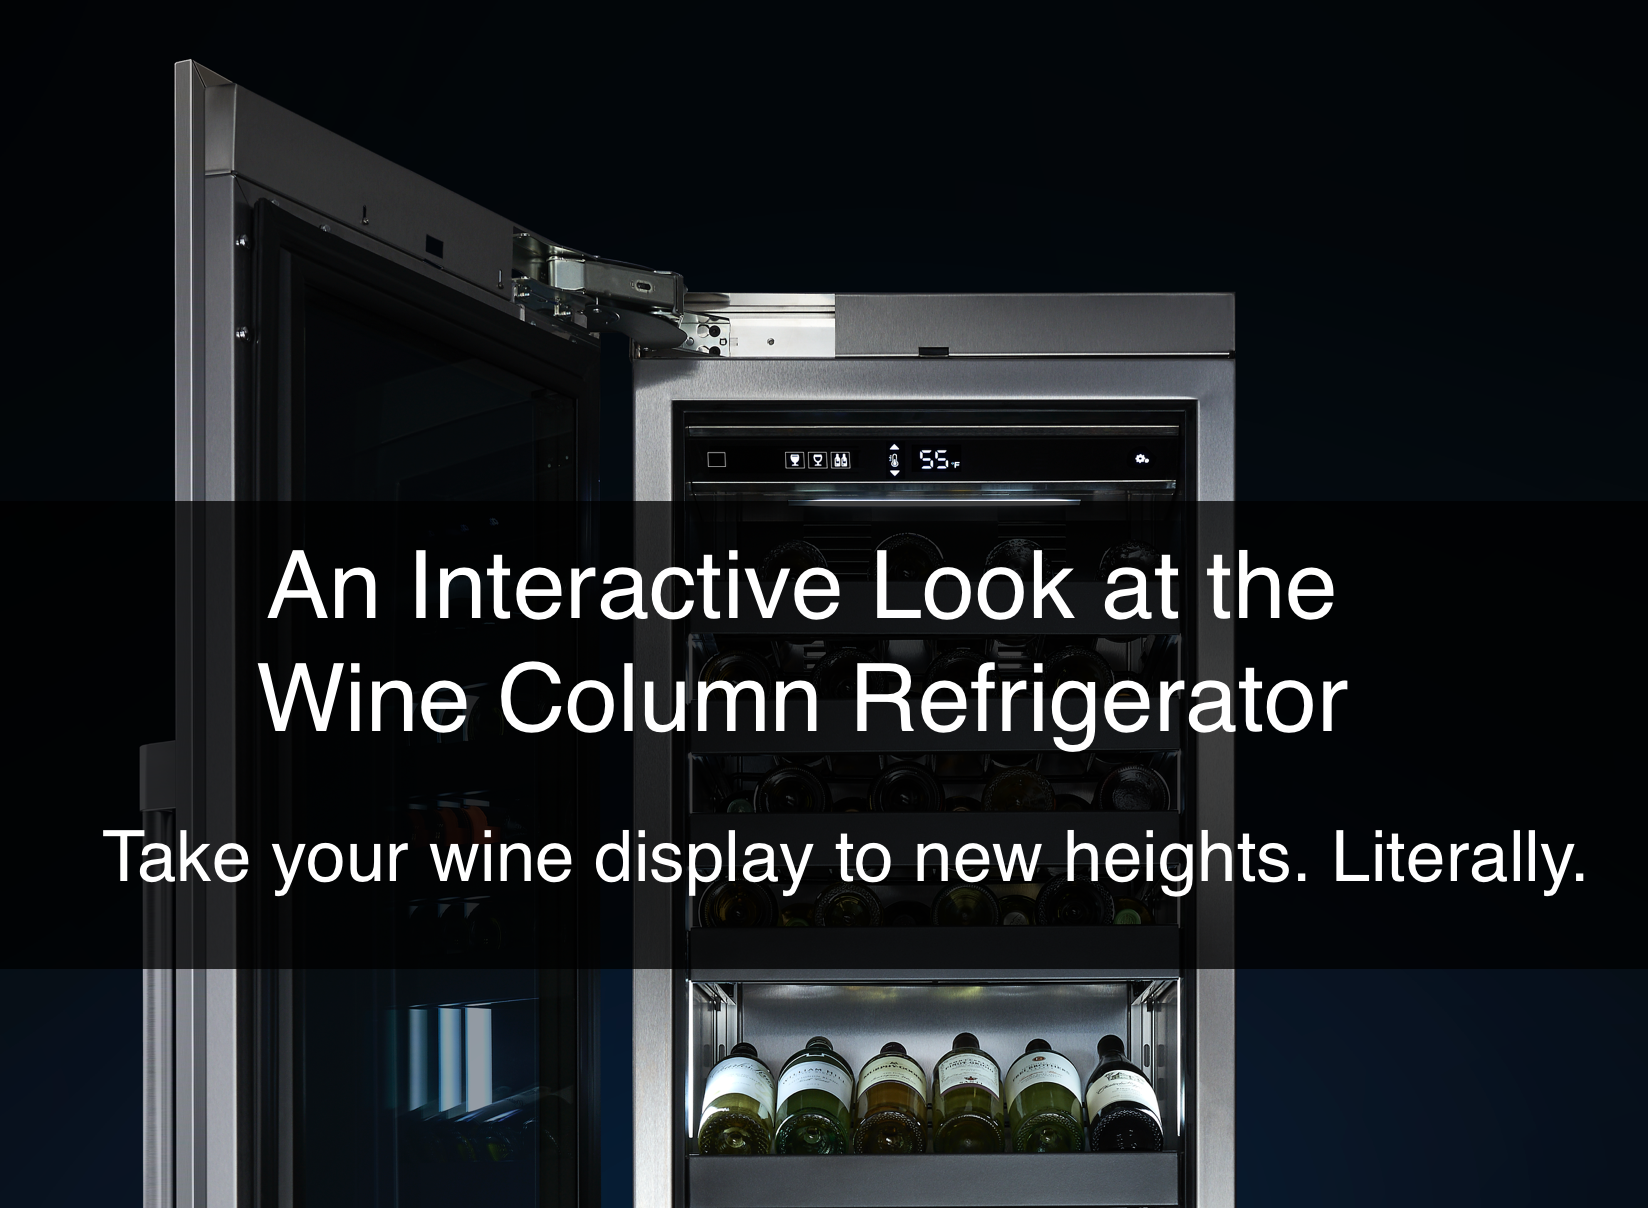 An Interactive Look at the Wine Column Refrigerator